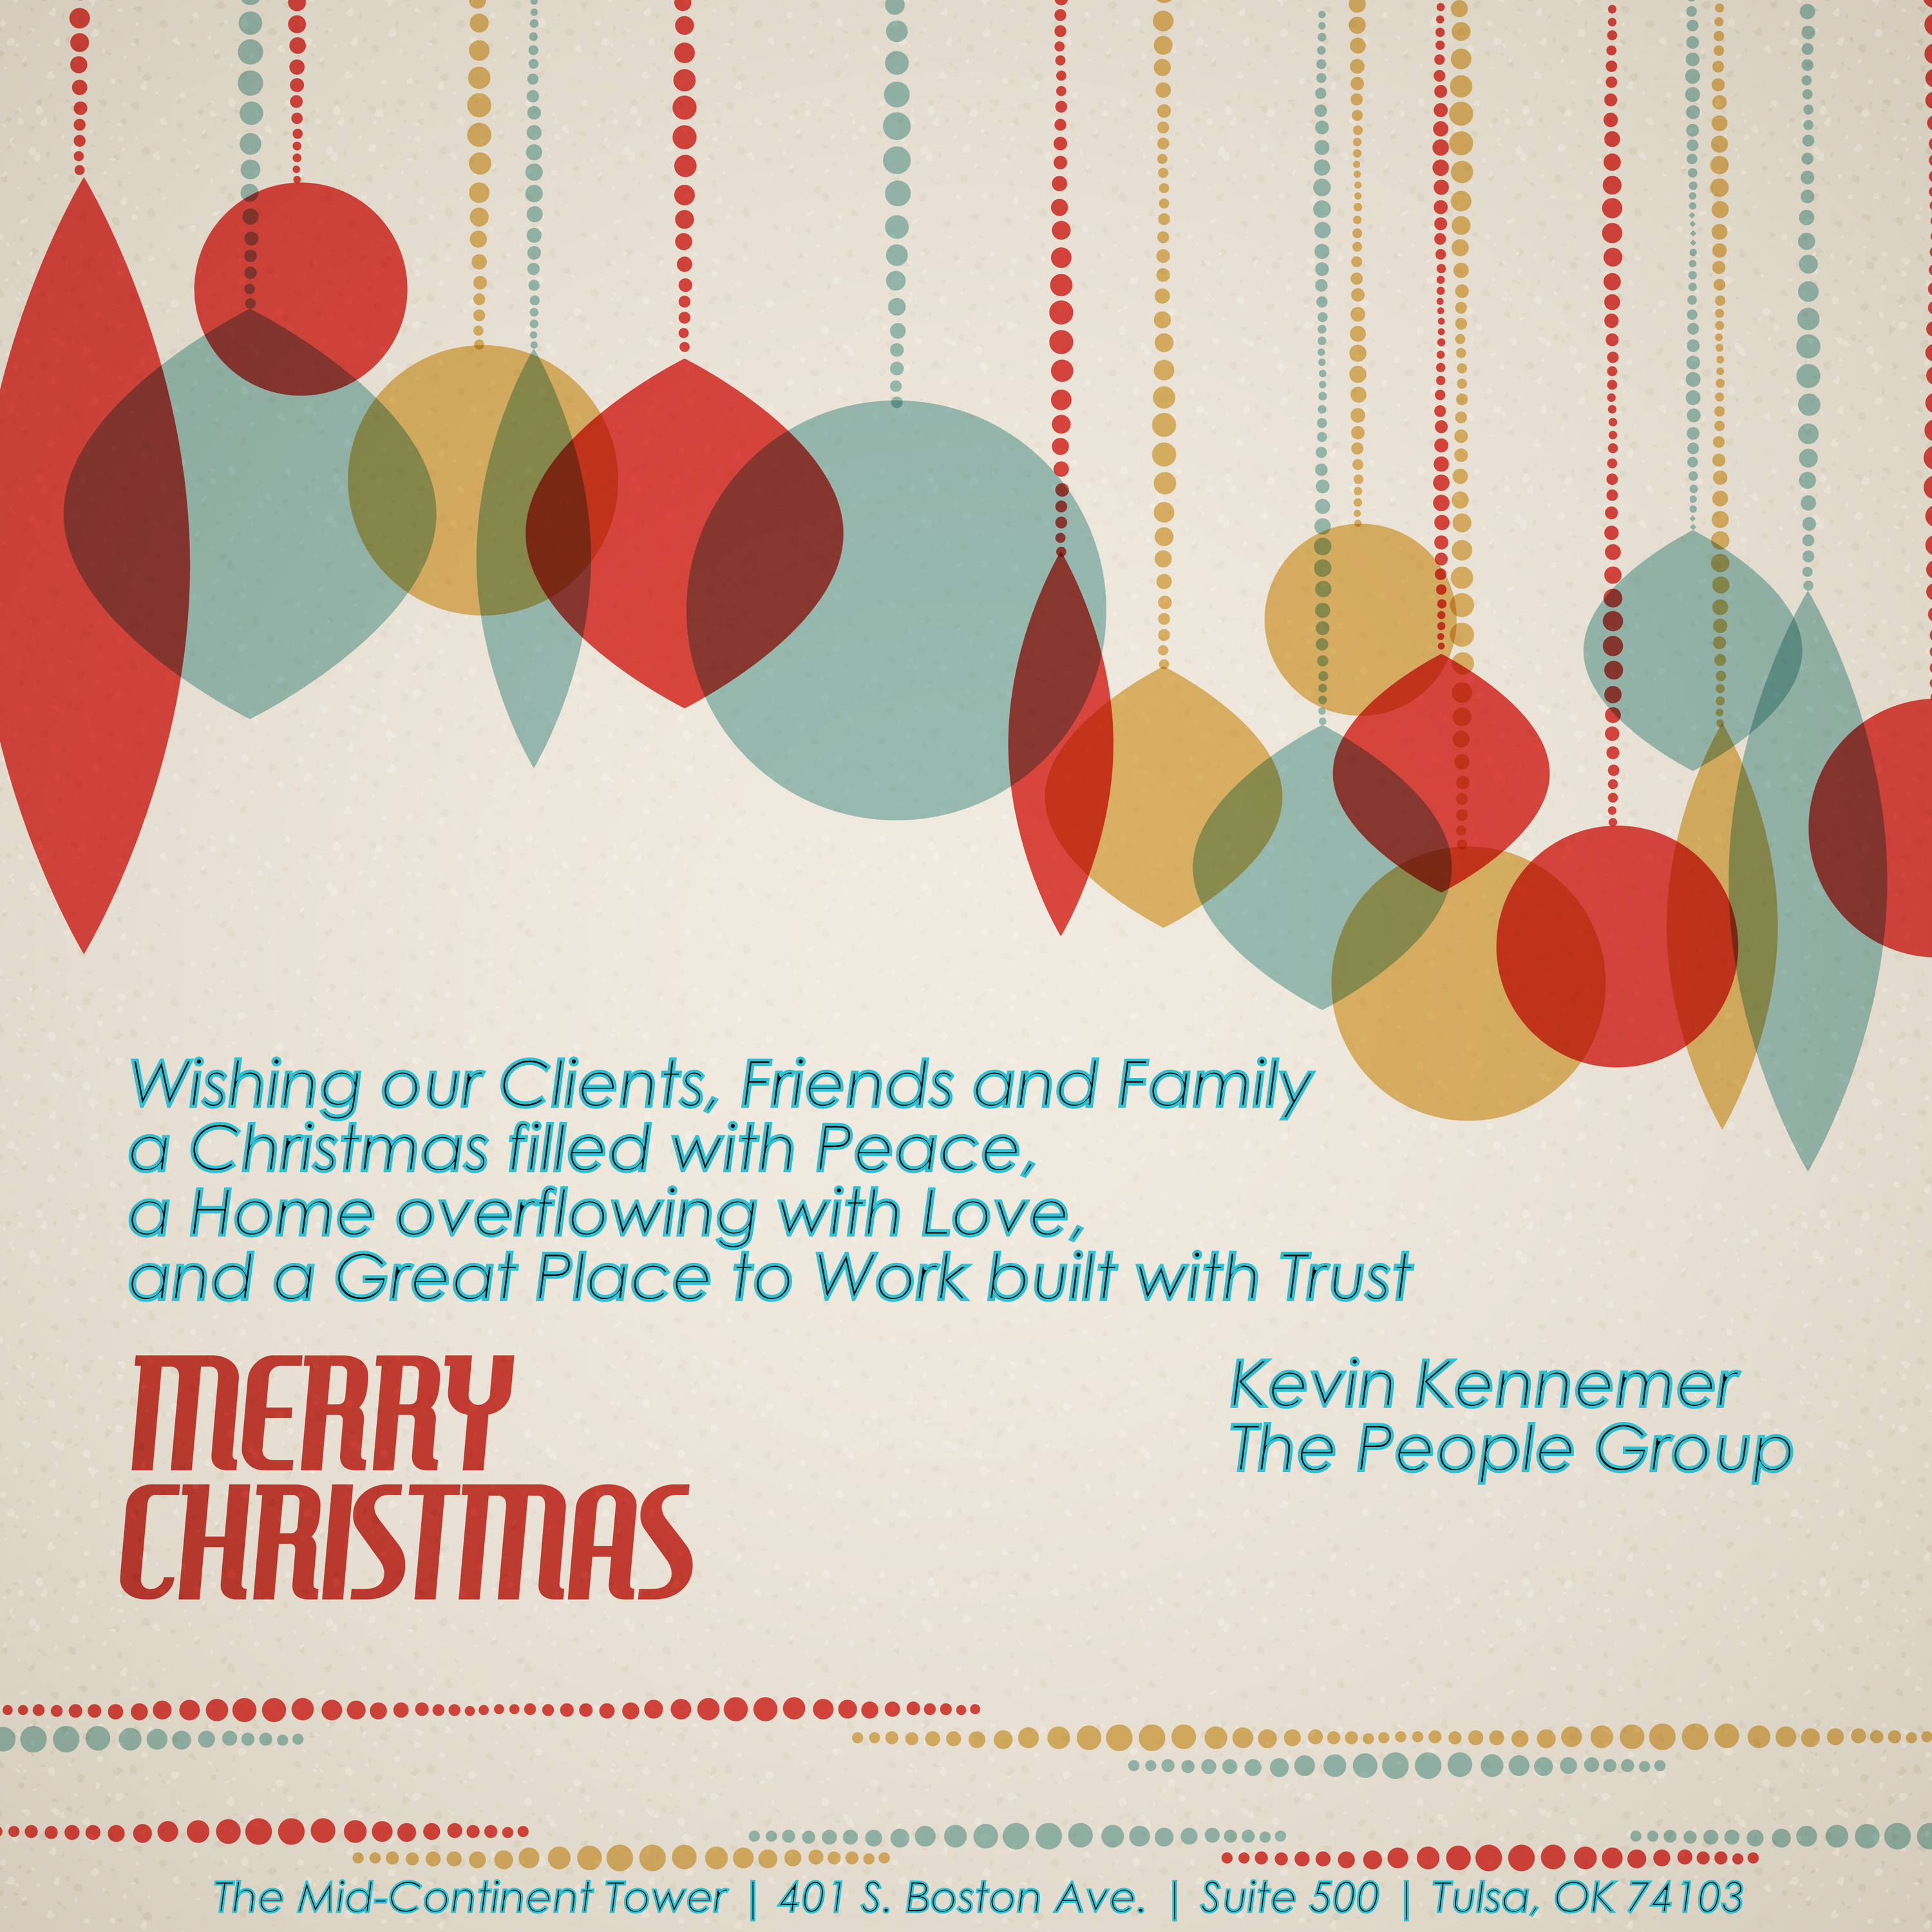 Christmas Card 2013 - The People Group